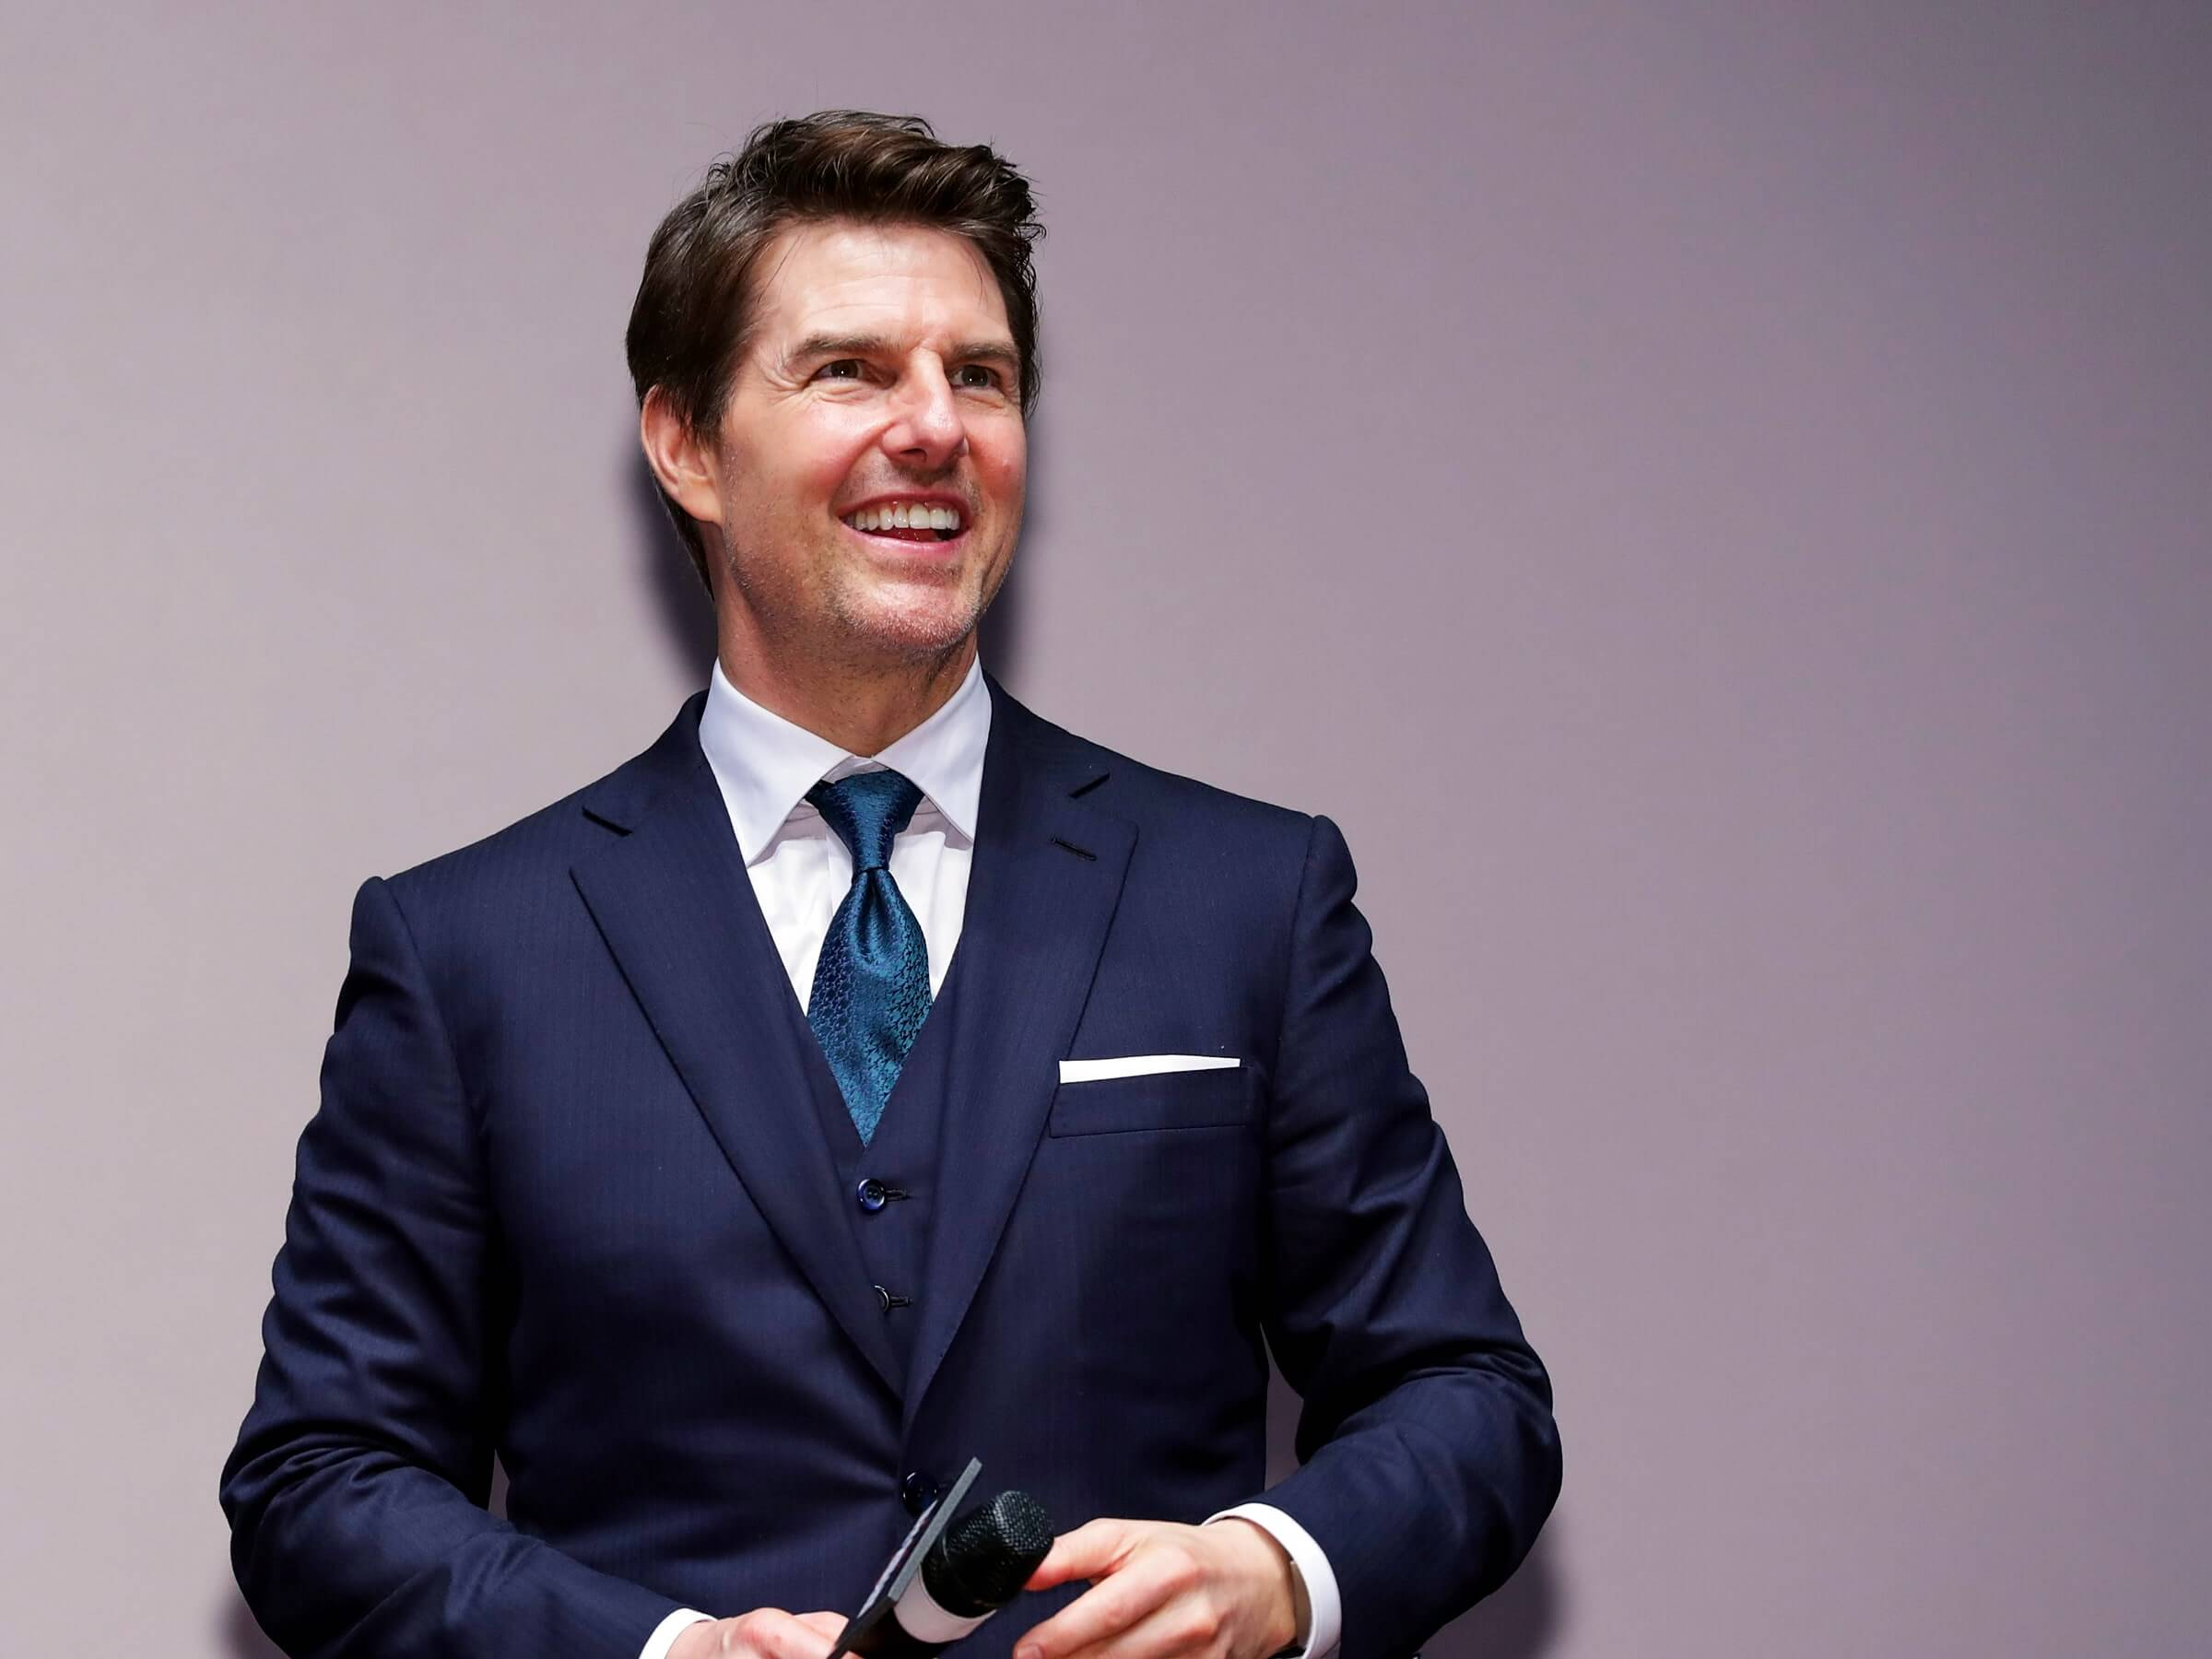 Tom Cruise is working with NASA and Elon Musk's SpaceX for the upcoming film